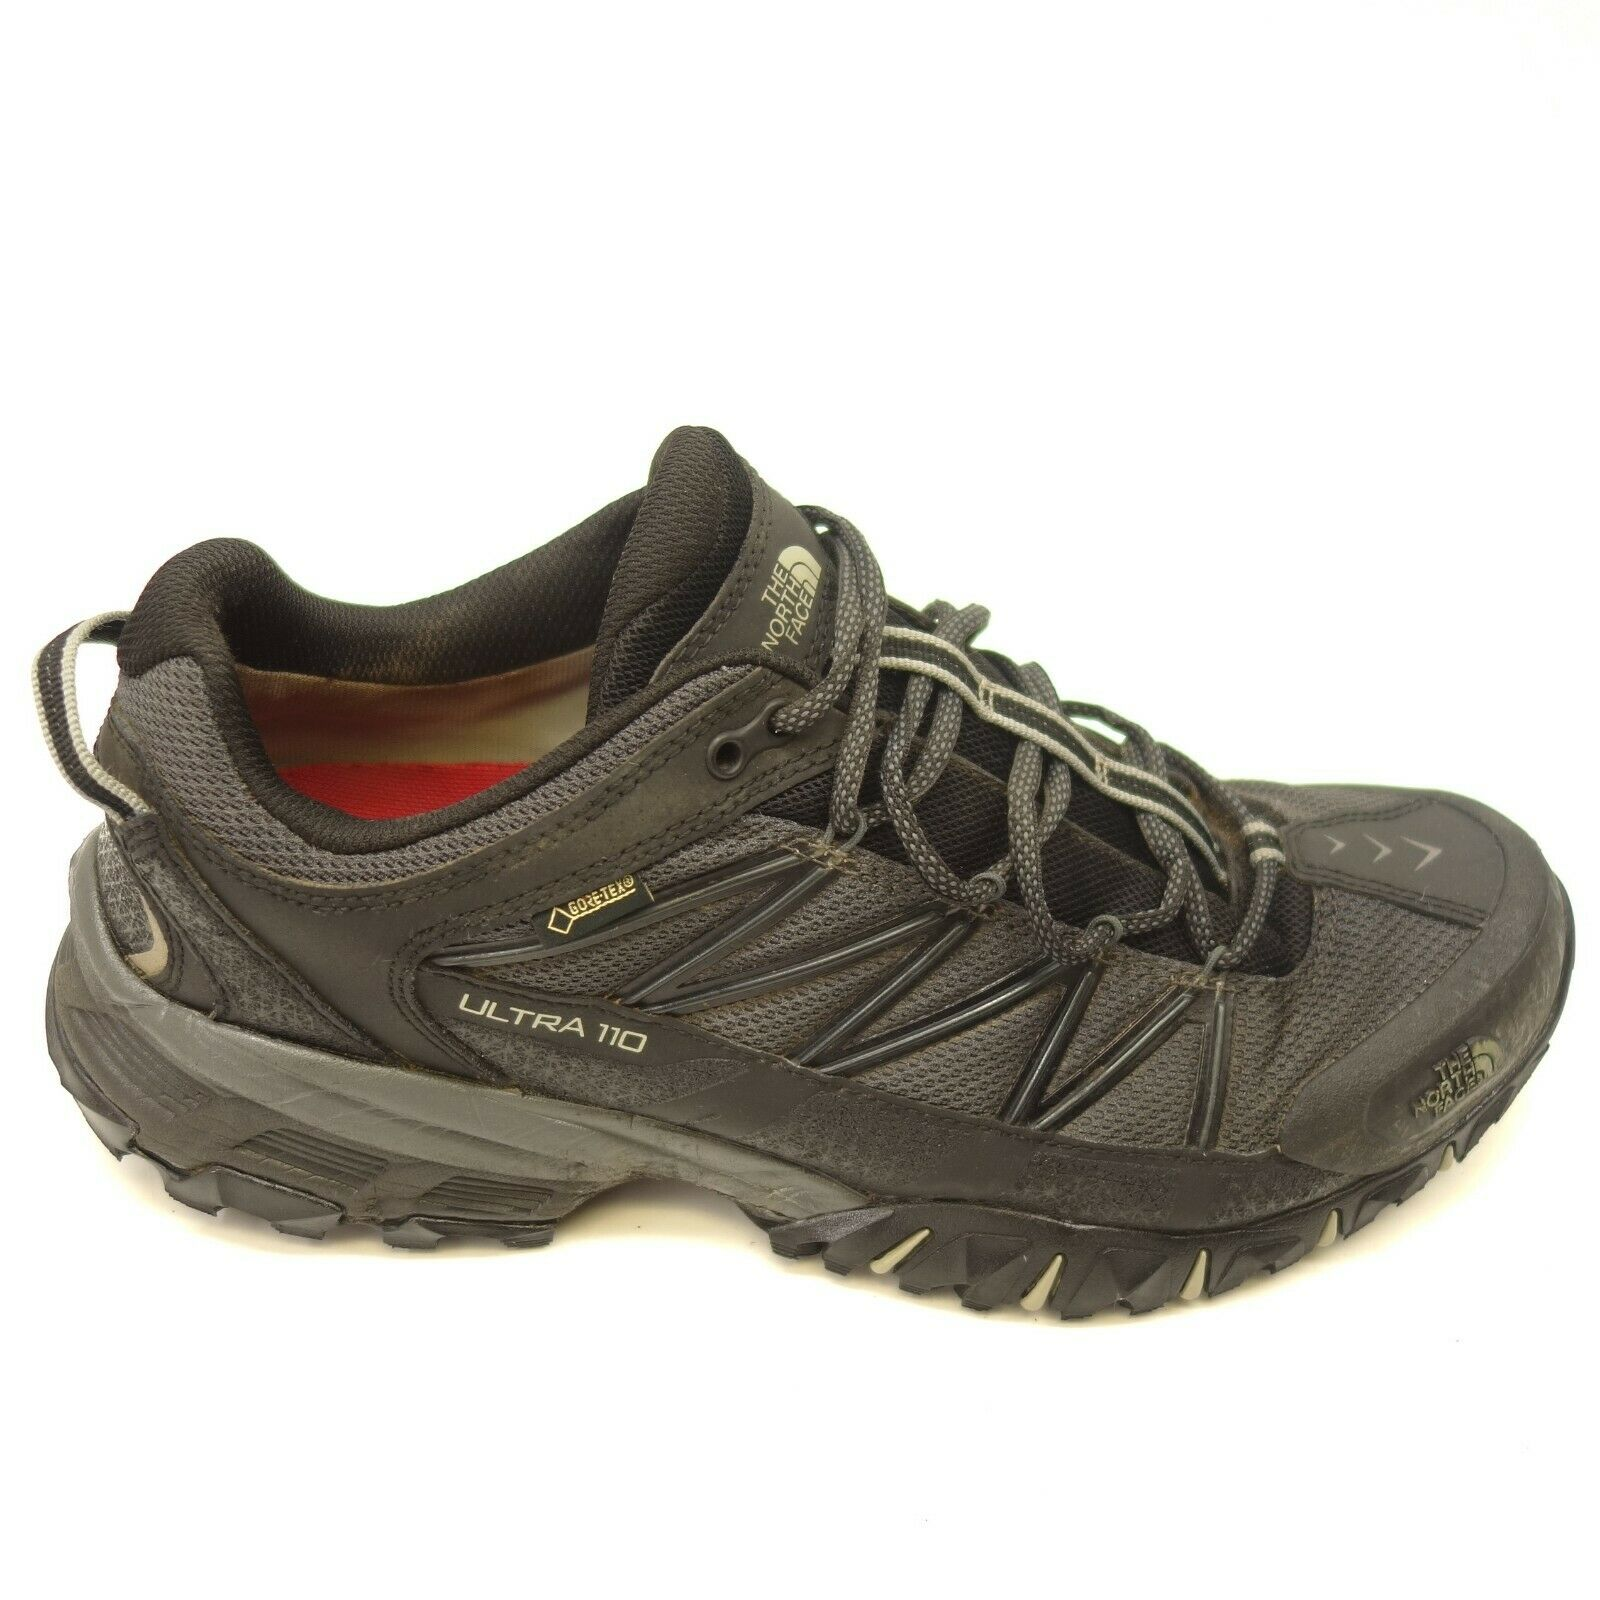 North Face Herren Ultra 110 Größe 10.5 Blk Athletic Stütze Trail Wanderschuhe   | Outlet Online